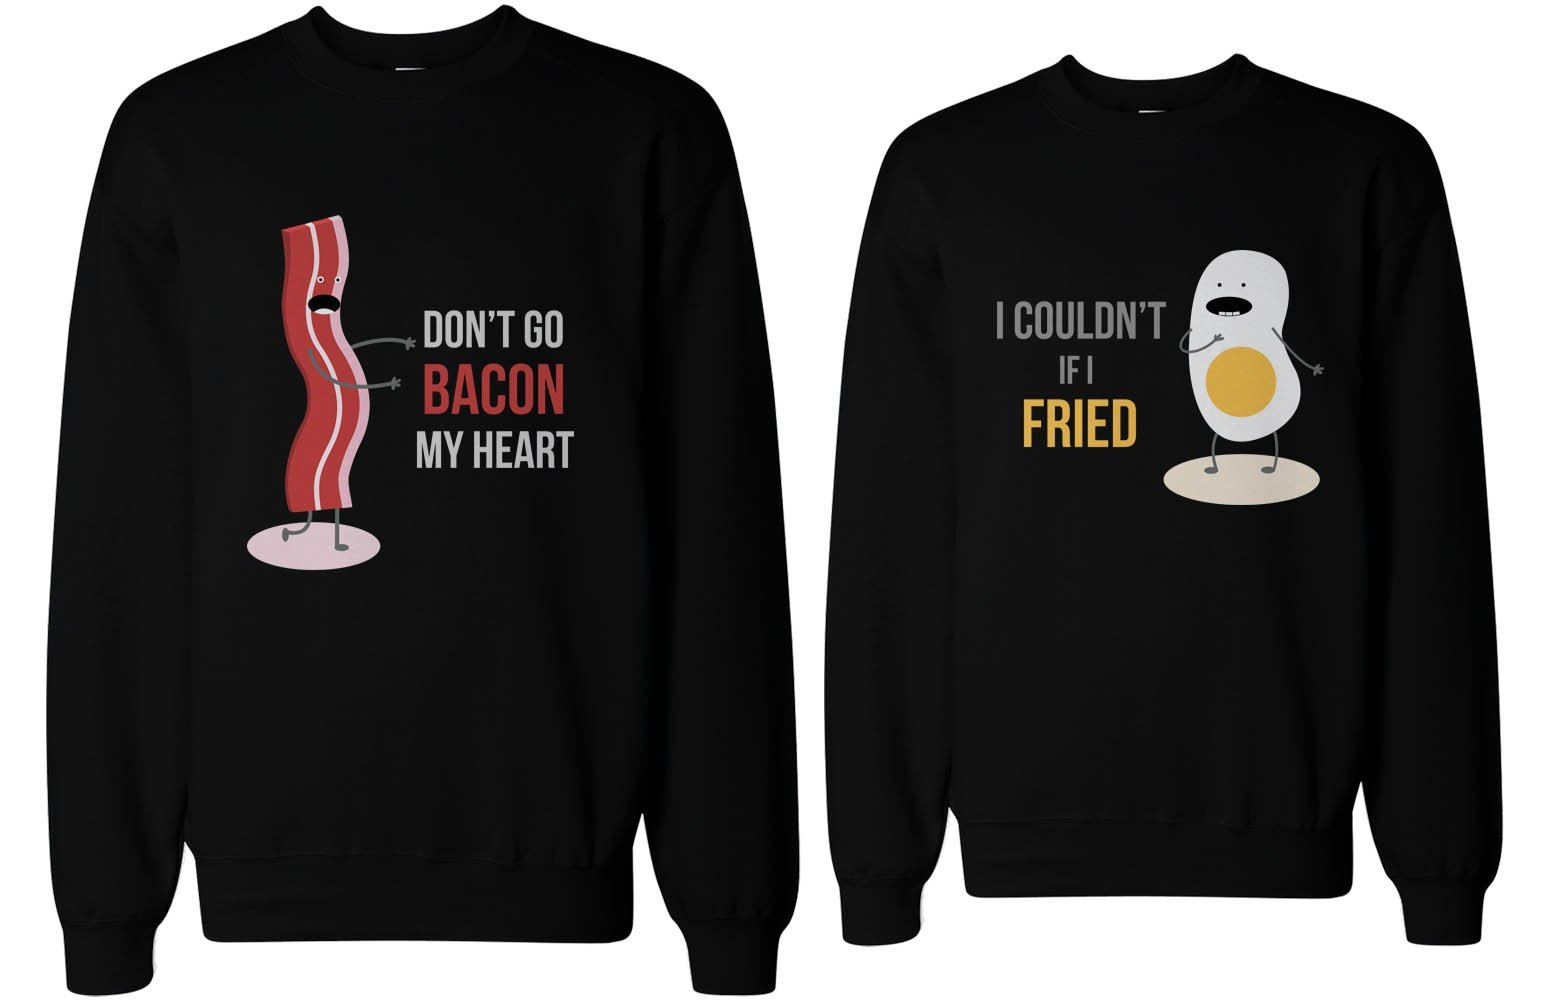 Image of Don't Go Bacon My Heart, I Couldn't If I Fried Matching Couple Sweatshirts